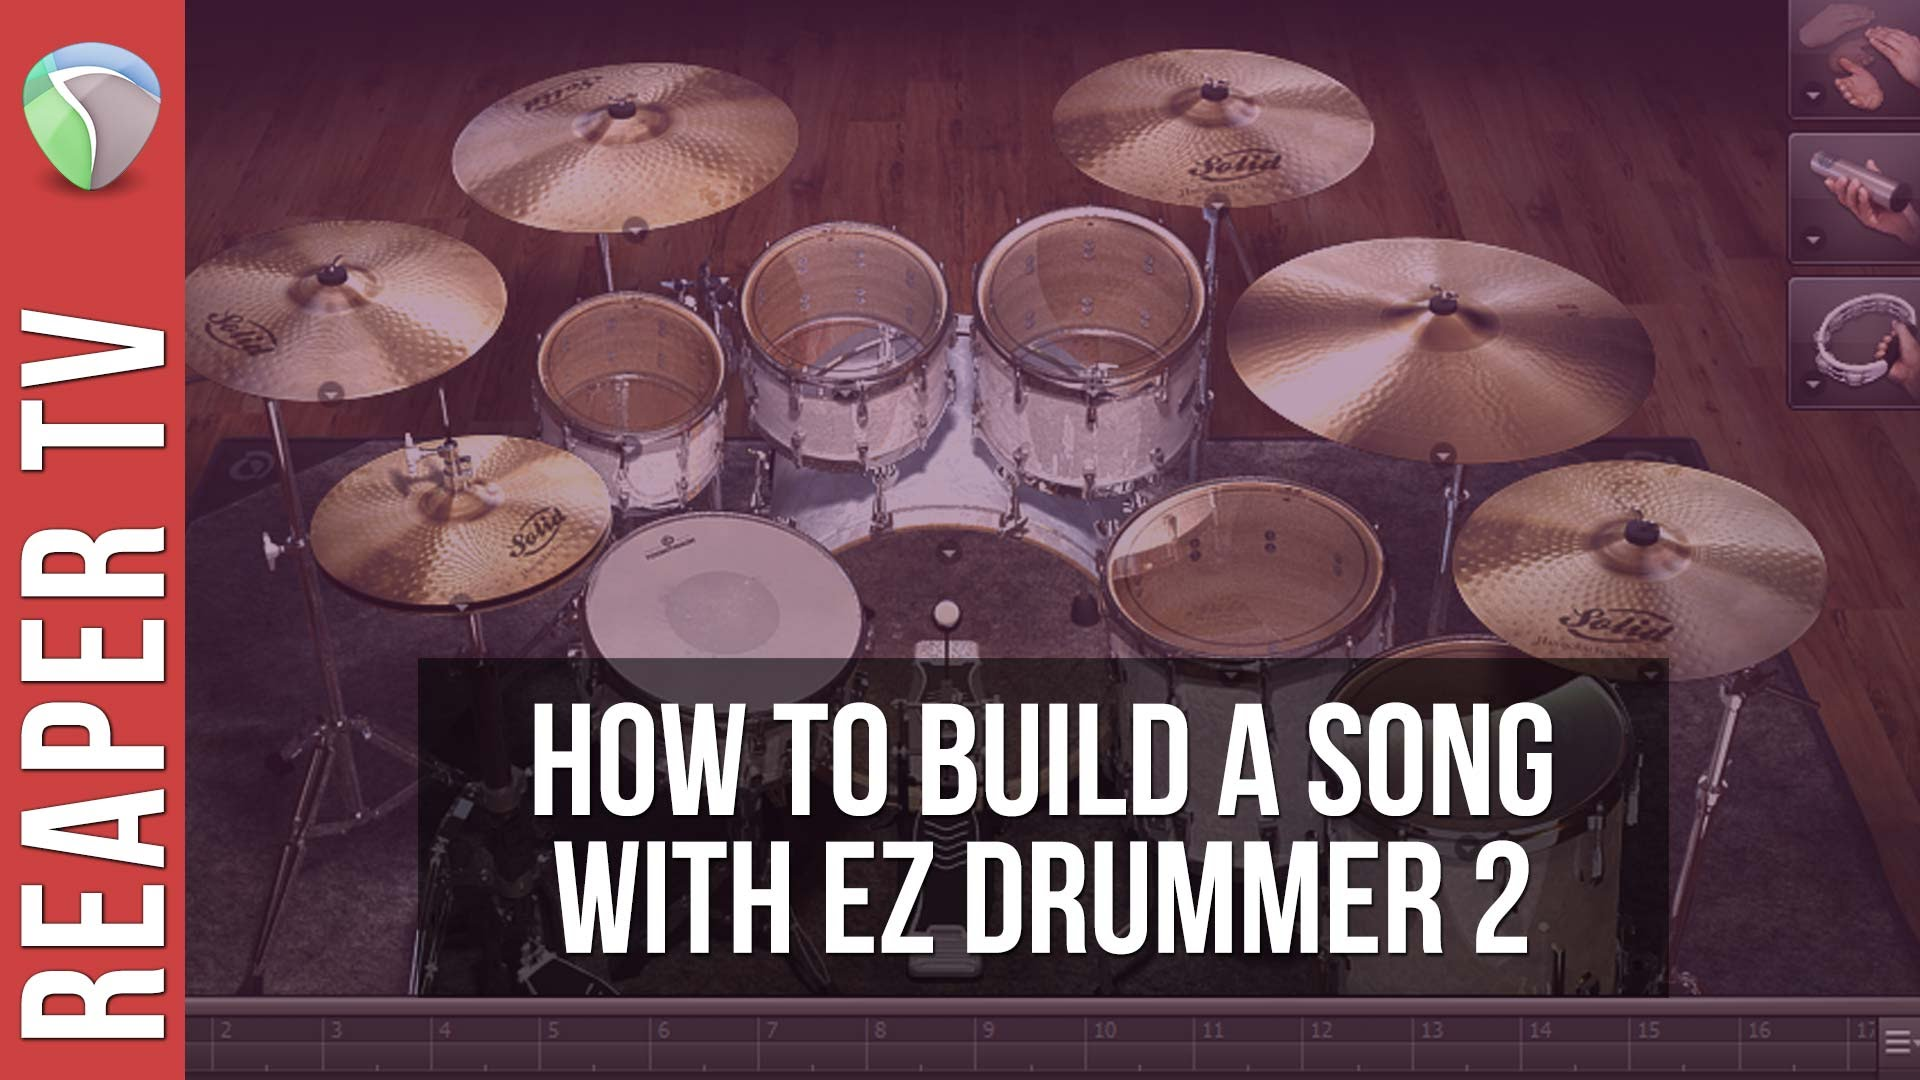 How To Build A Song With EZ Drummer 2